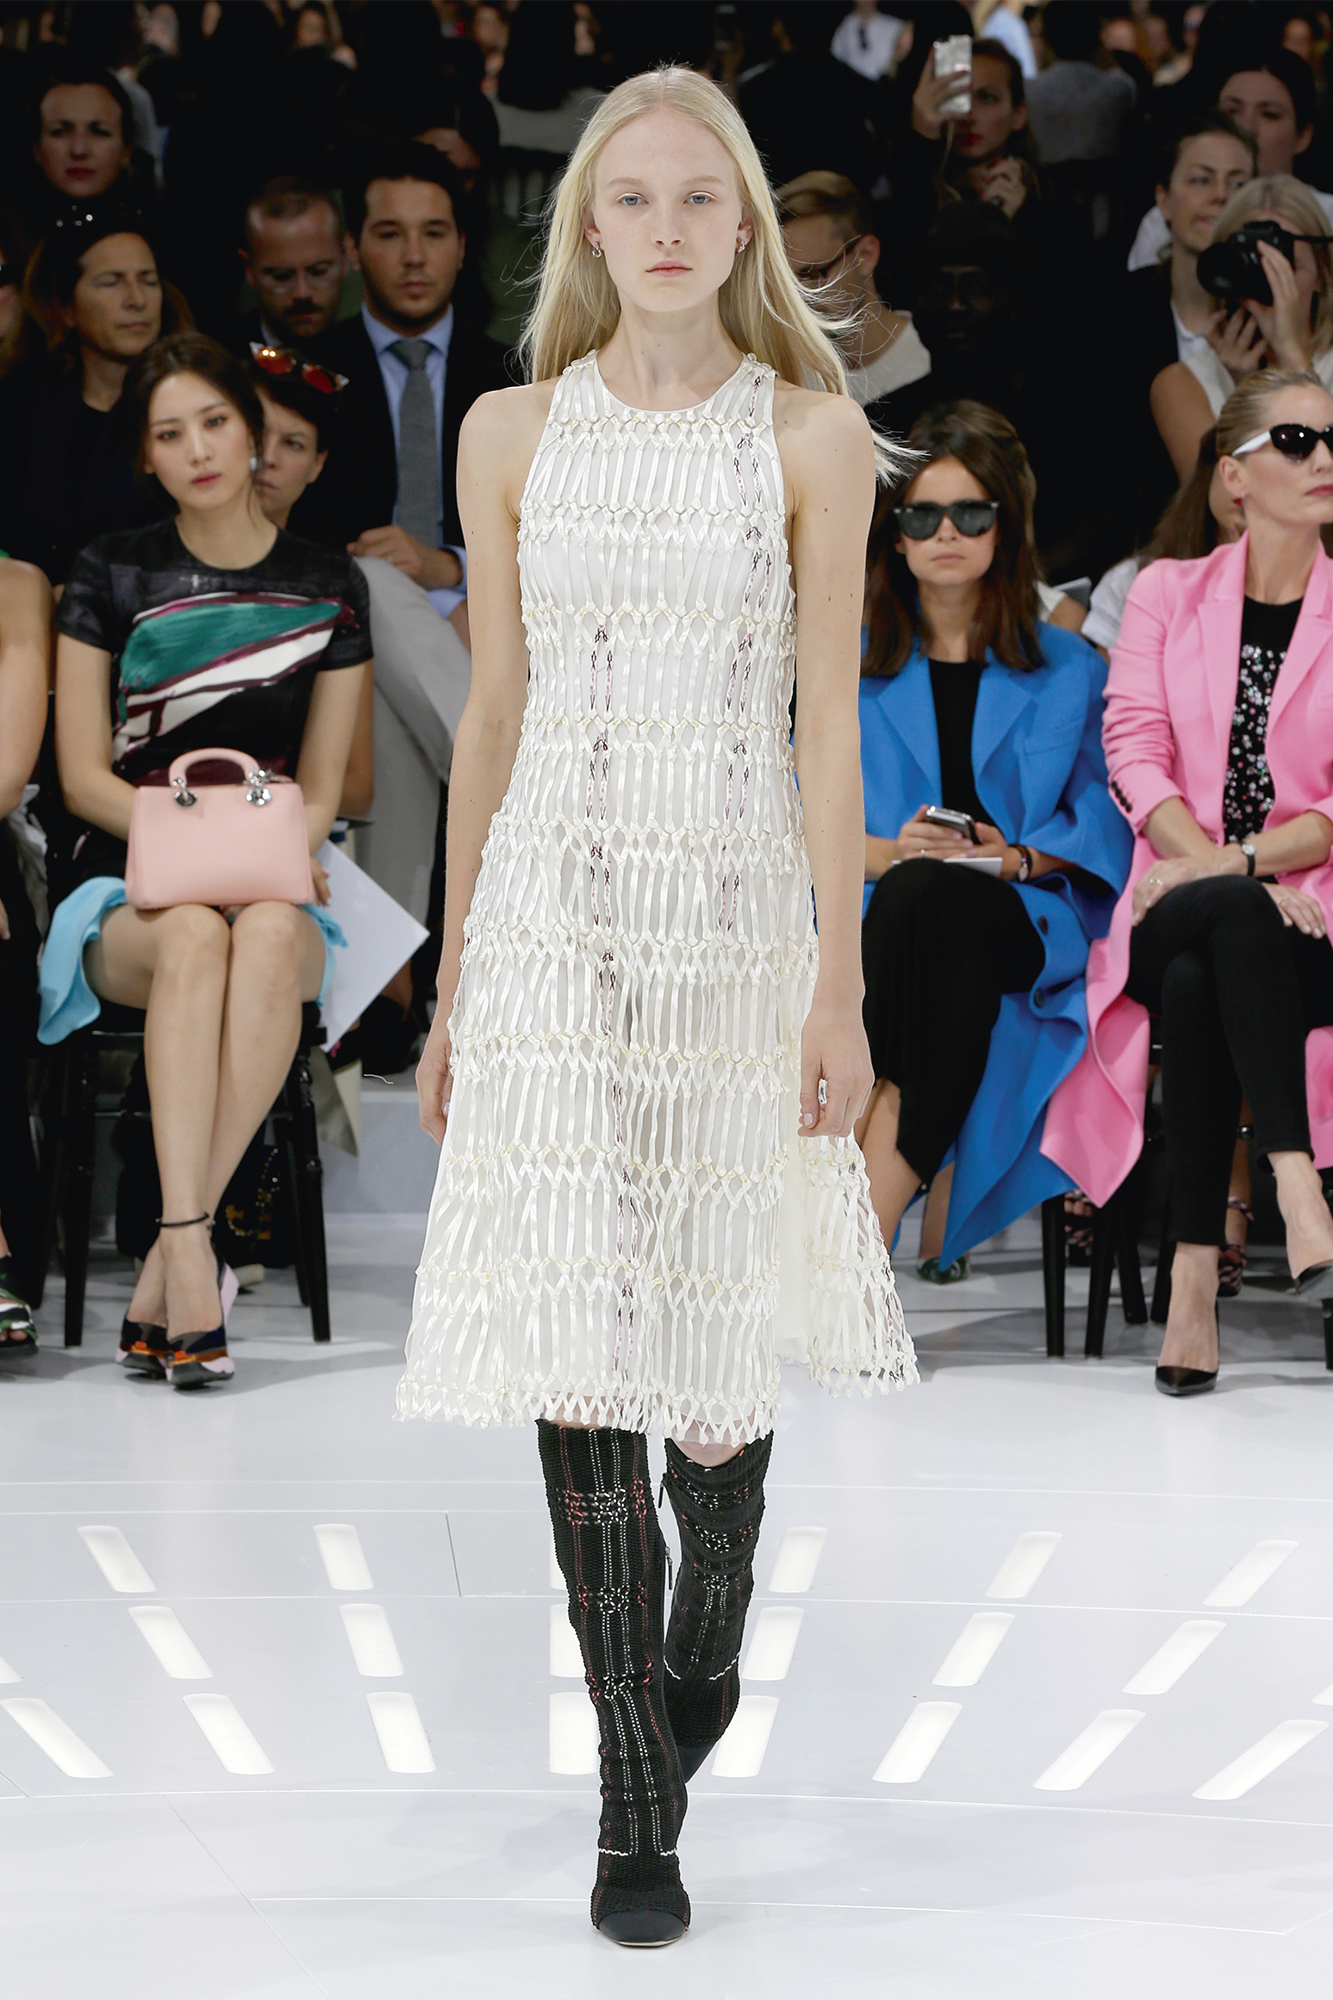 New Western Fashion Christian Dior Ready To Wear Dresses Spring Summer Collection 2015 (33)